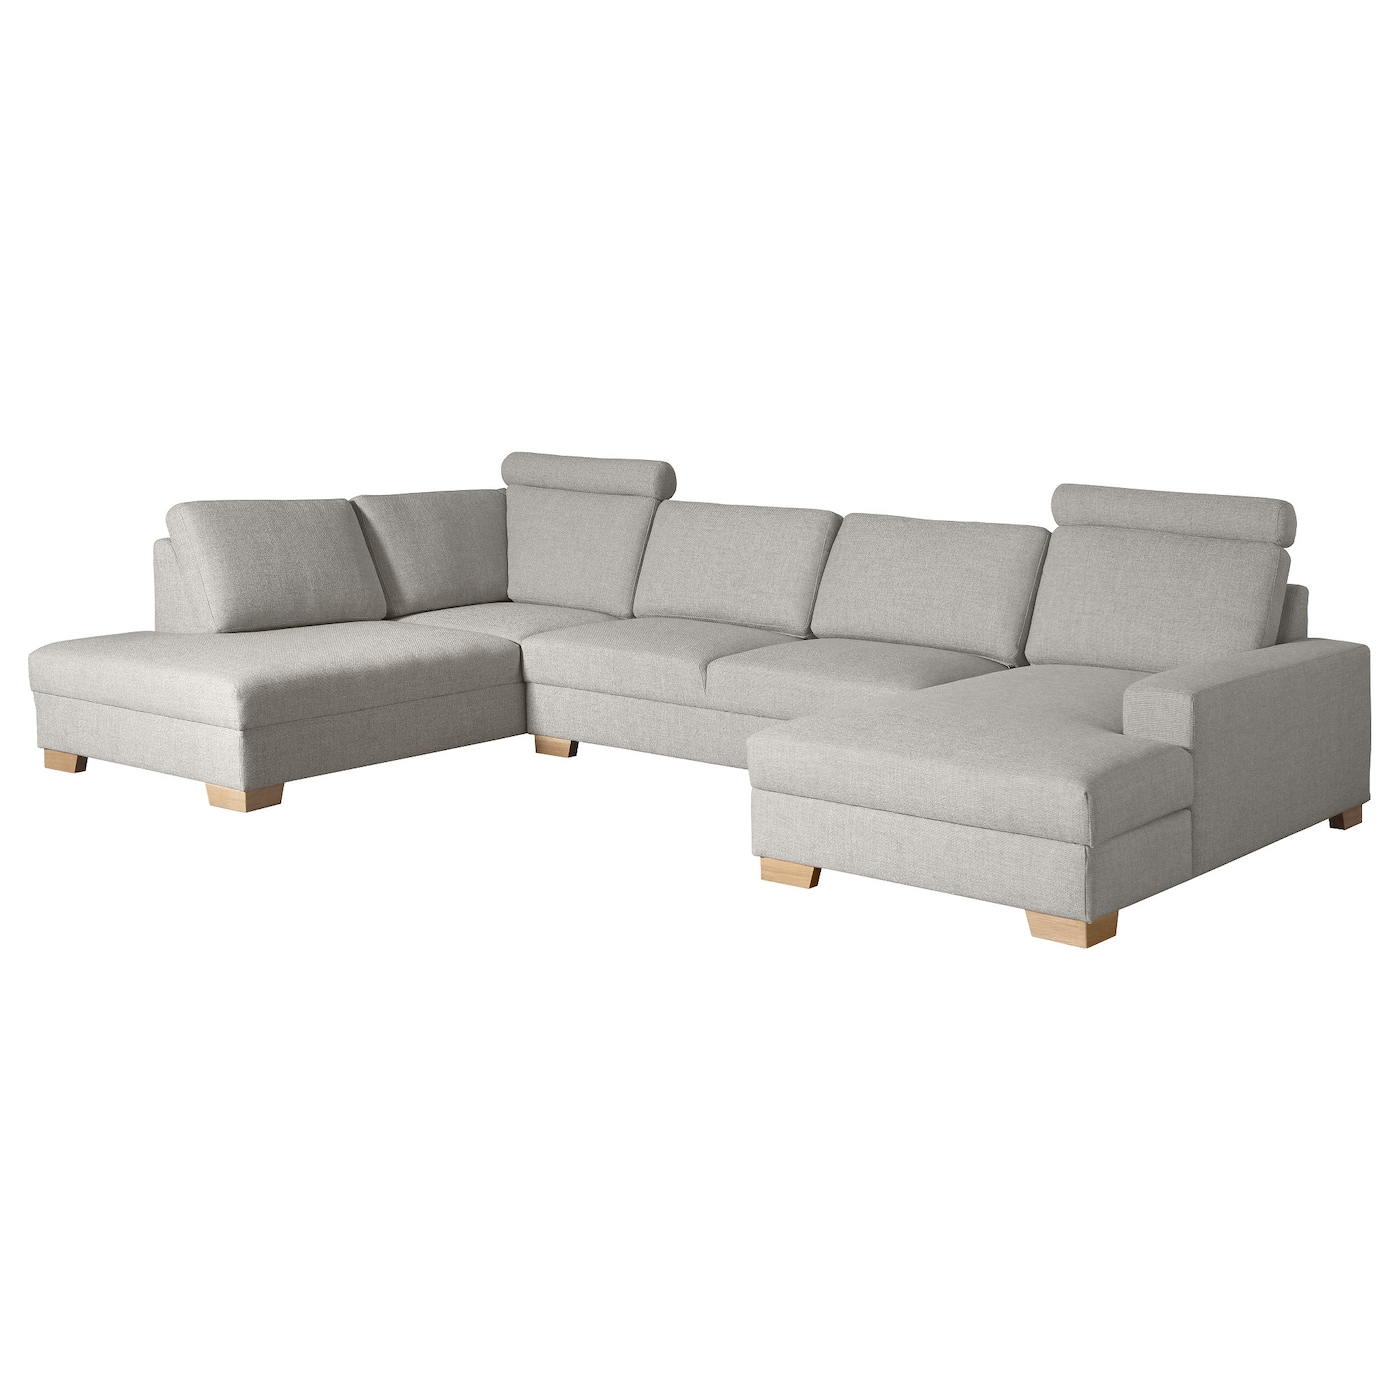 zweisitzer sofa ikea nockeby loveseat tallmyra rust wood ikea husse f r ikea klippan 2 seater. Black Bedroom Furniture Sets. Home Design Ideas